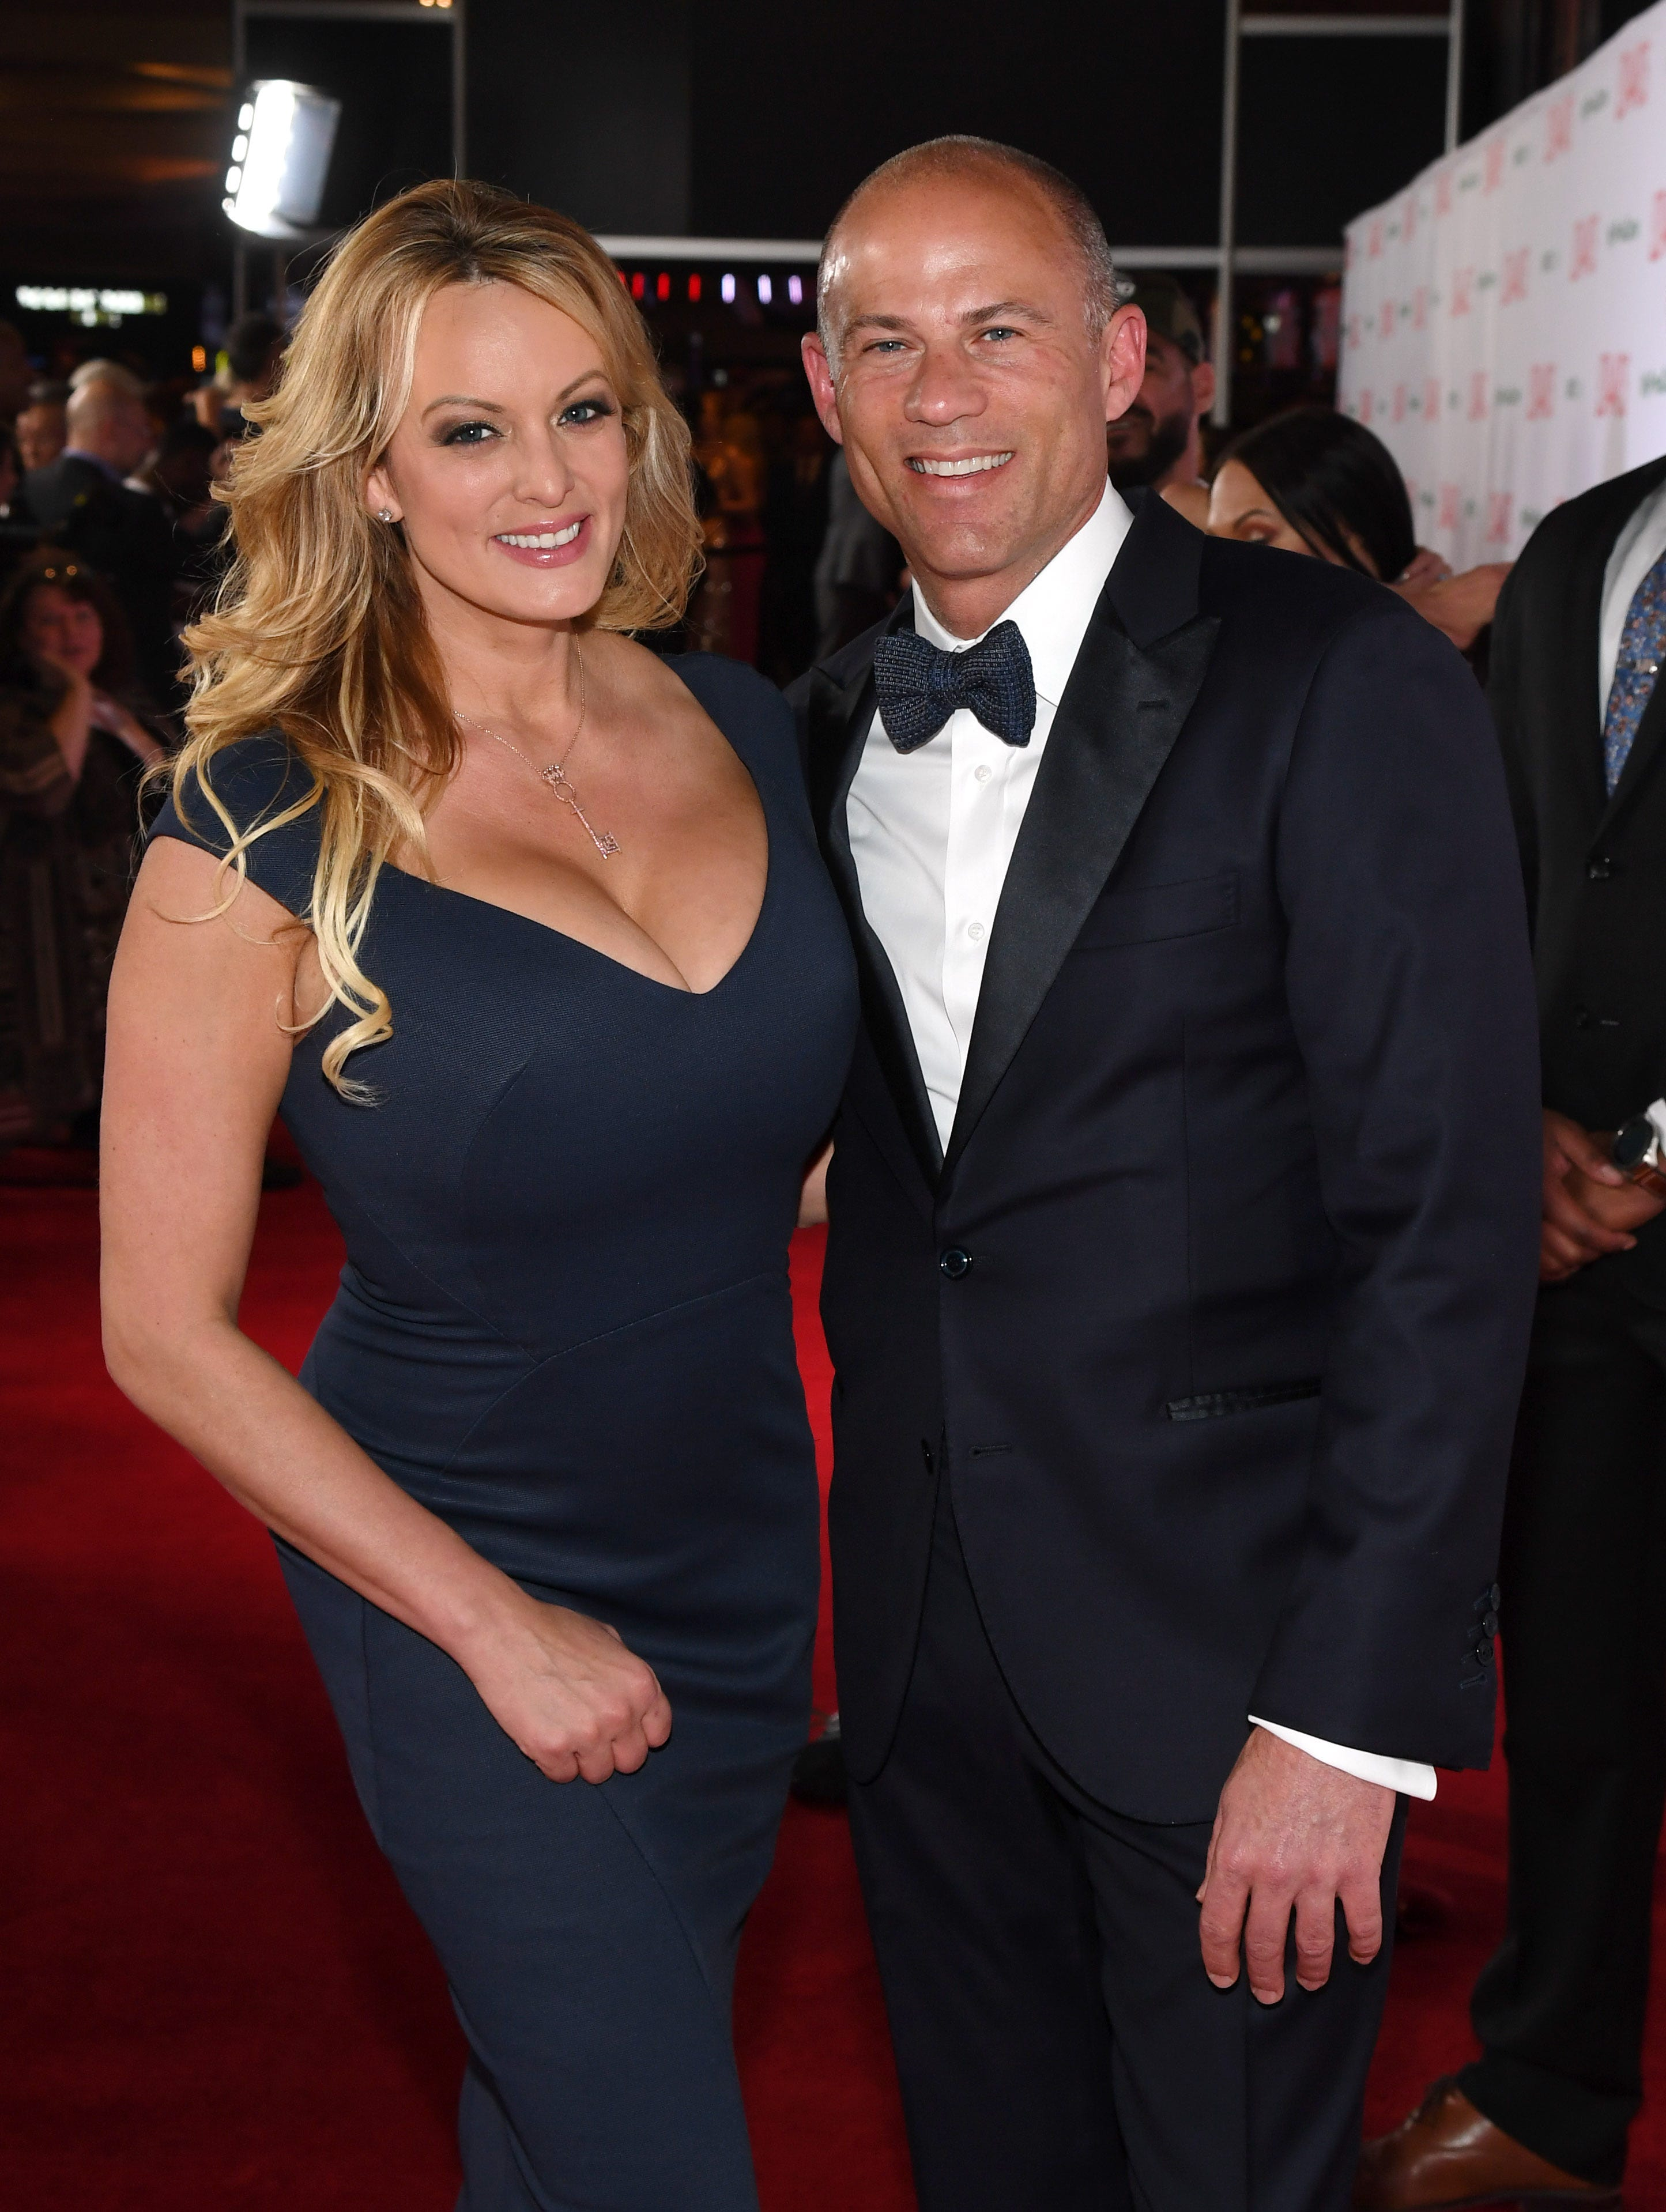 Stormy Daniels hints there's more to come after Michael Avenatti's arrest